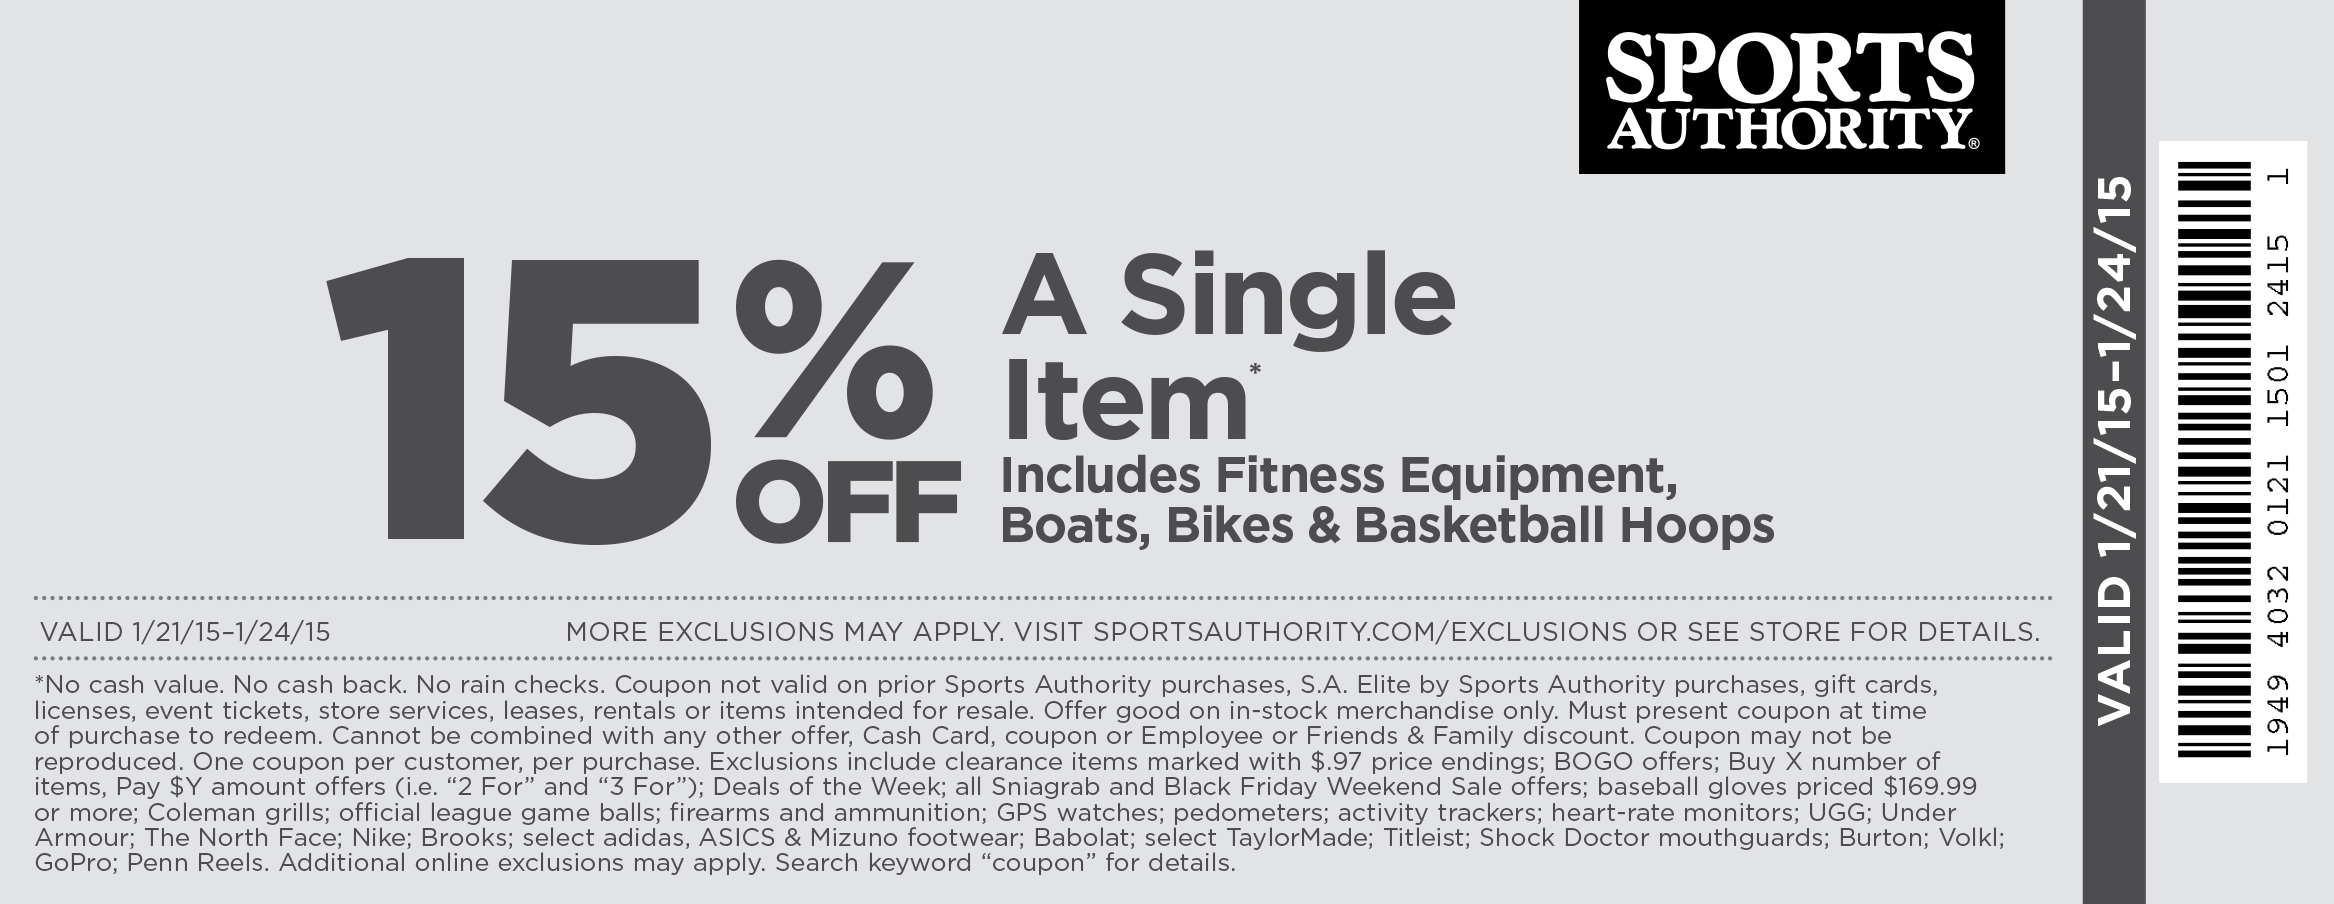 Sports Authority Coupon August 2017 15% off a single item at Sports Authority, ditto online